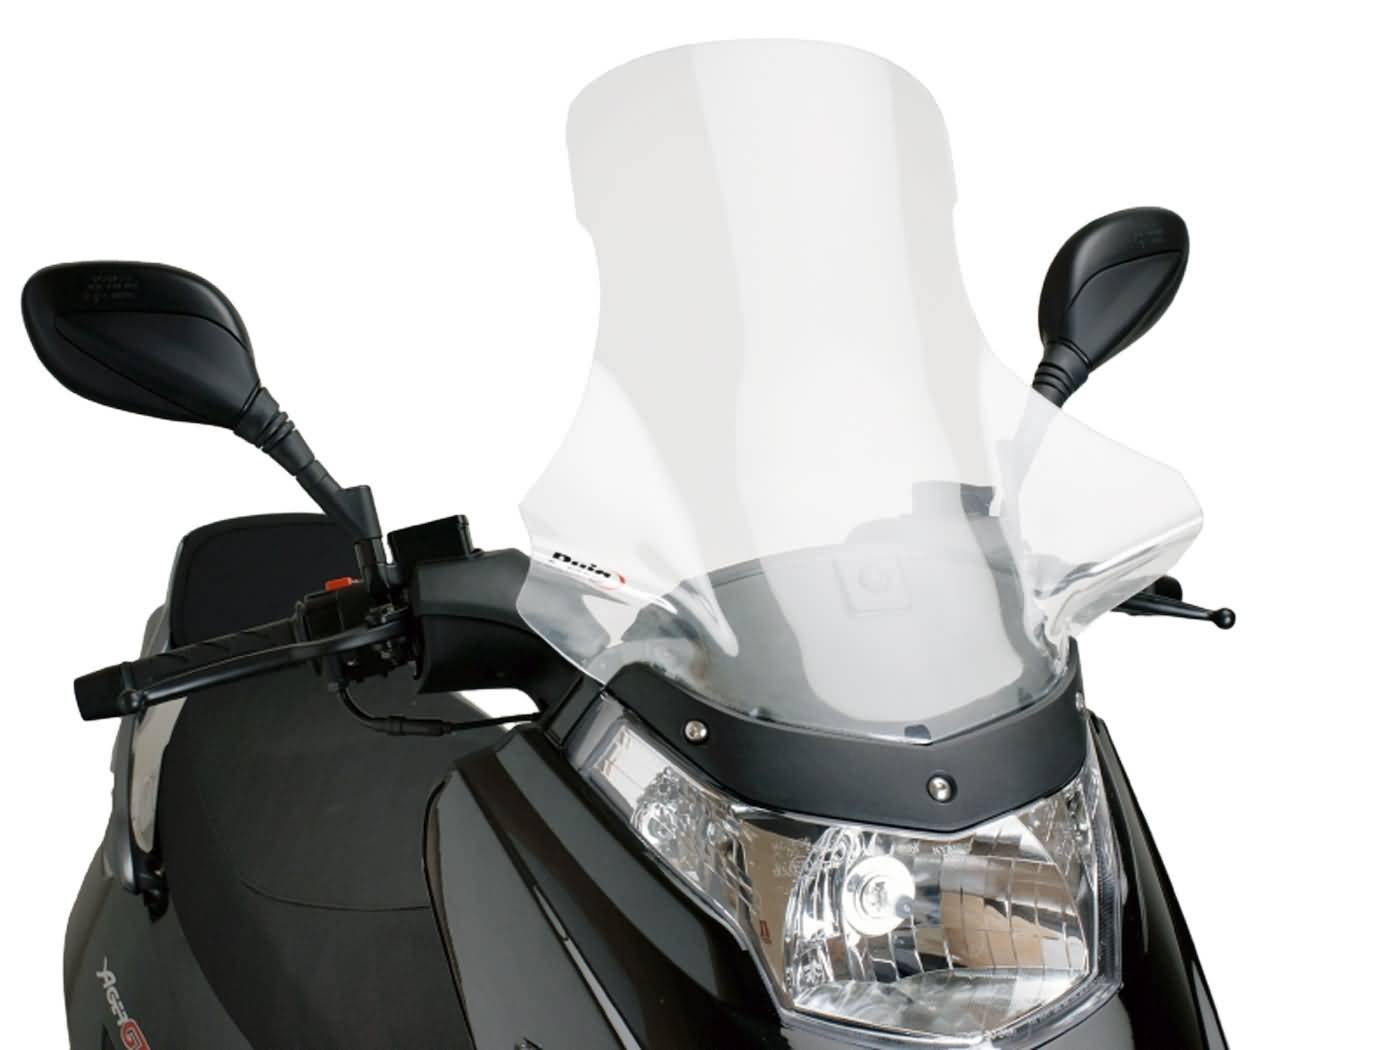 Puig 4539 W parabrezza Touring per Maxiscooter Kymco Dink 50//125//250 2007-2015 media Yager GT 50//125//200 I 2007-2015 trasparente